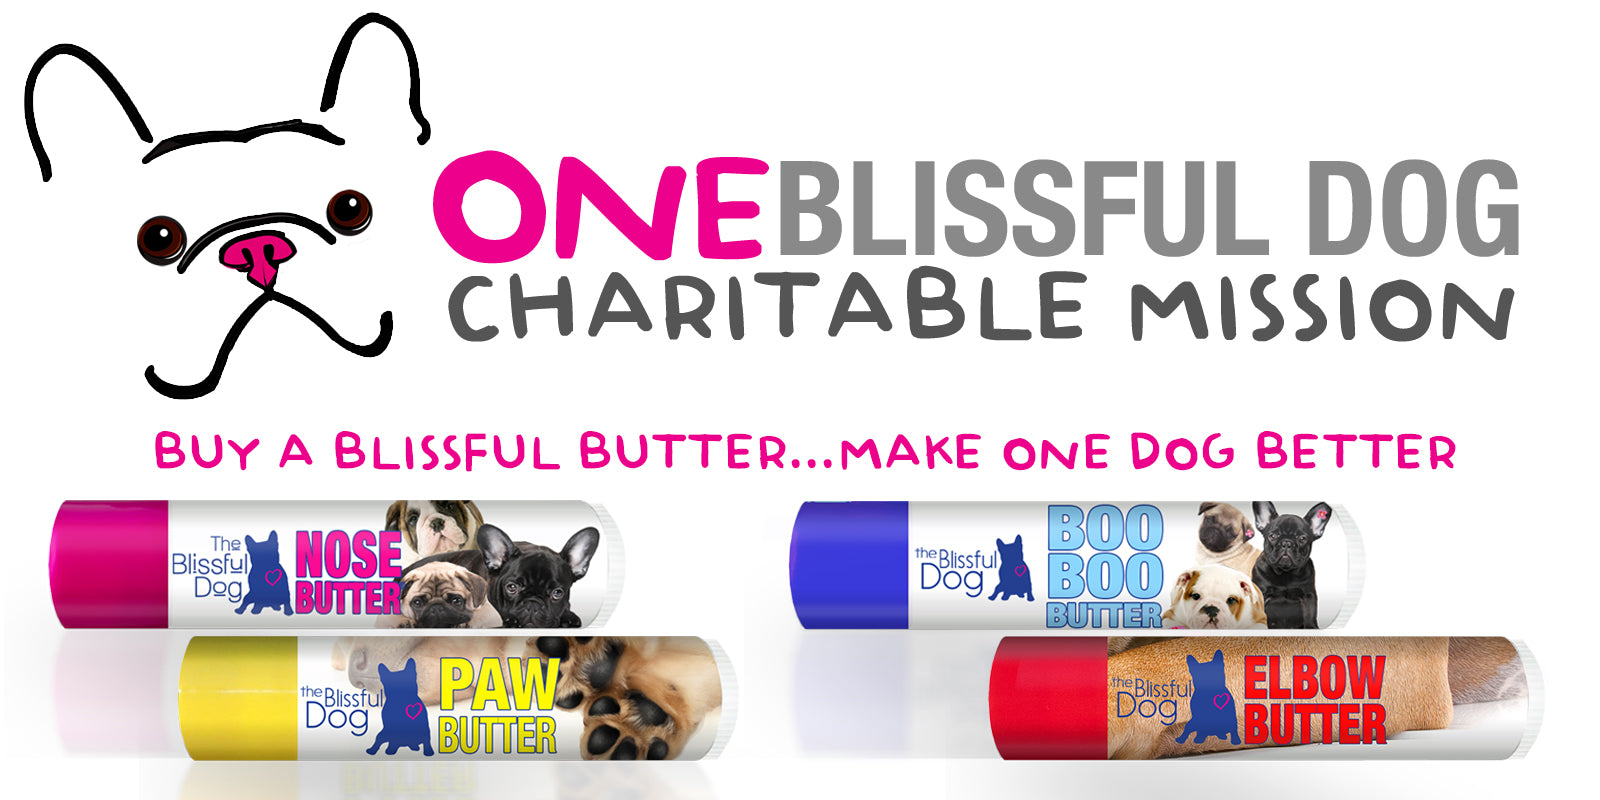 HELP ONE BLISSFUL DOG